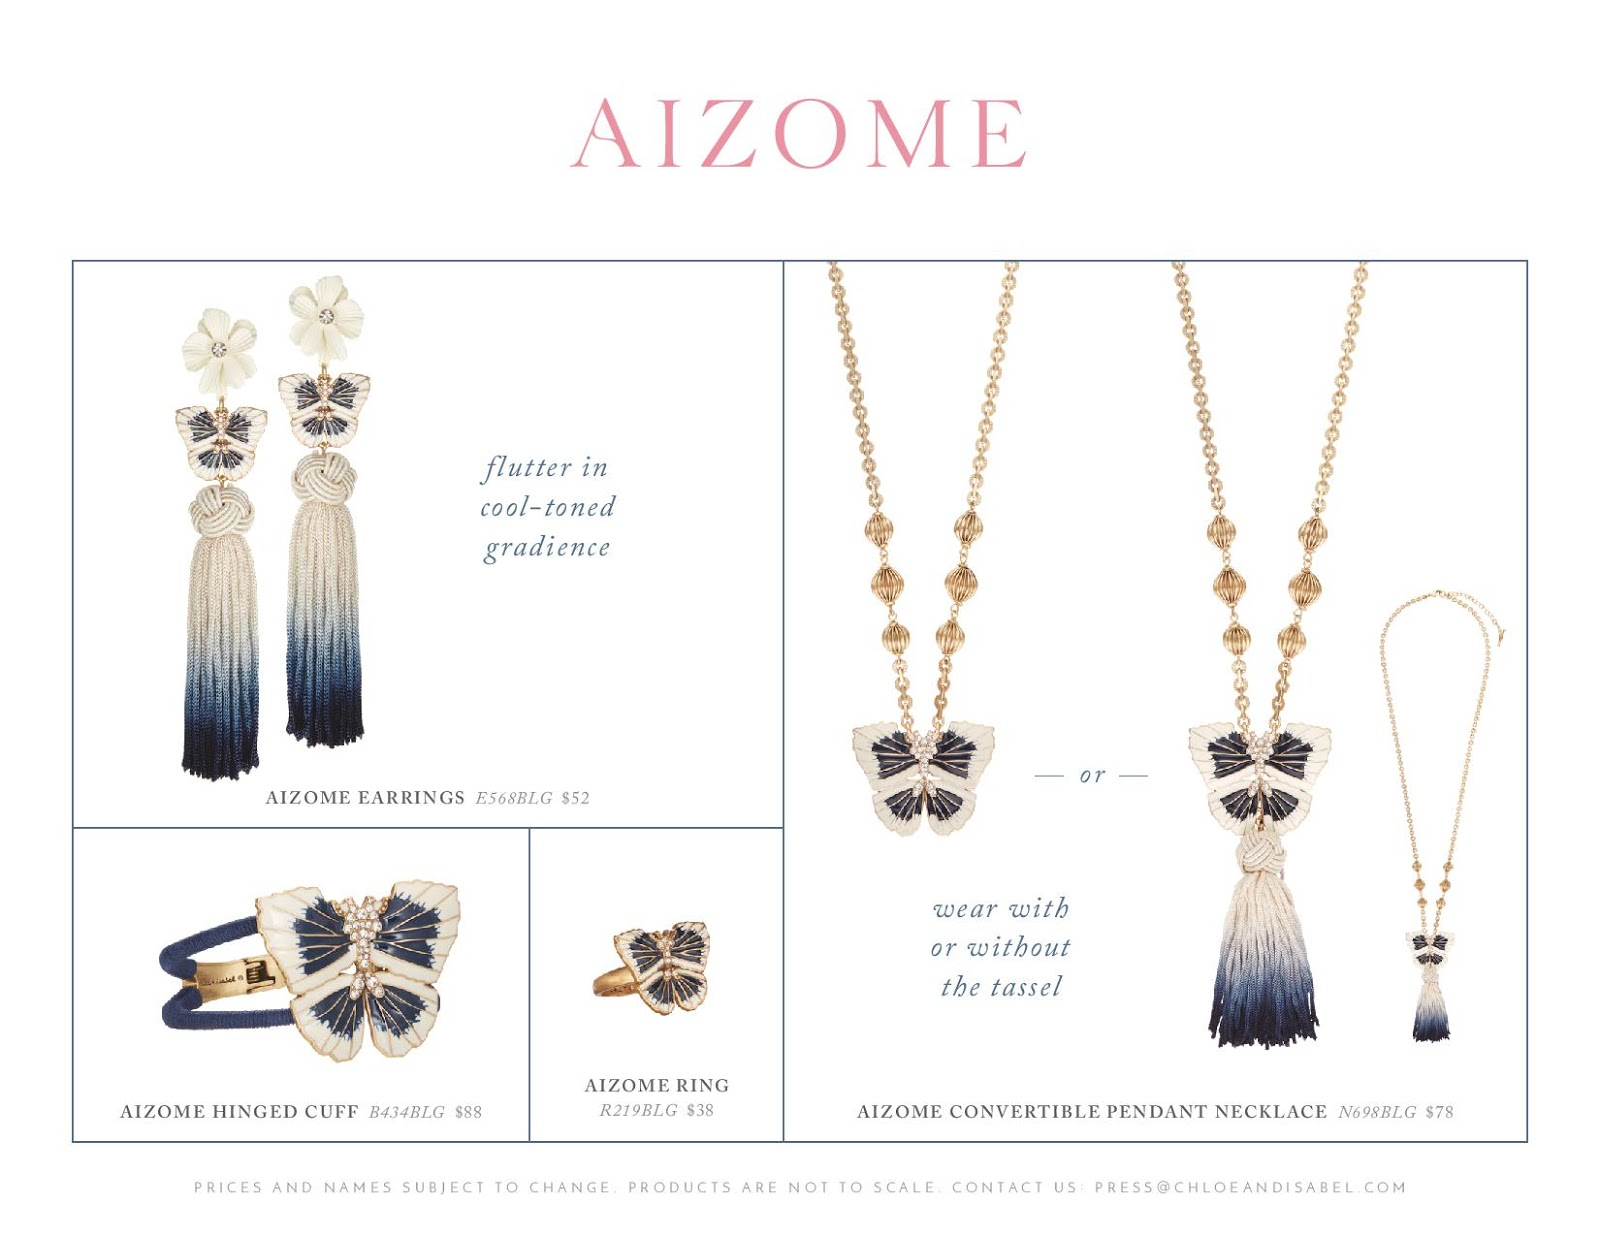 Perfectly Pretty Spring Jewelry From The Chloe And Isabel